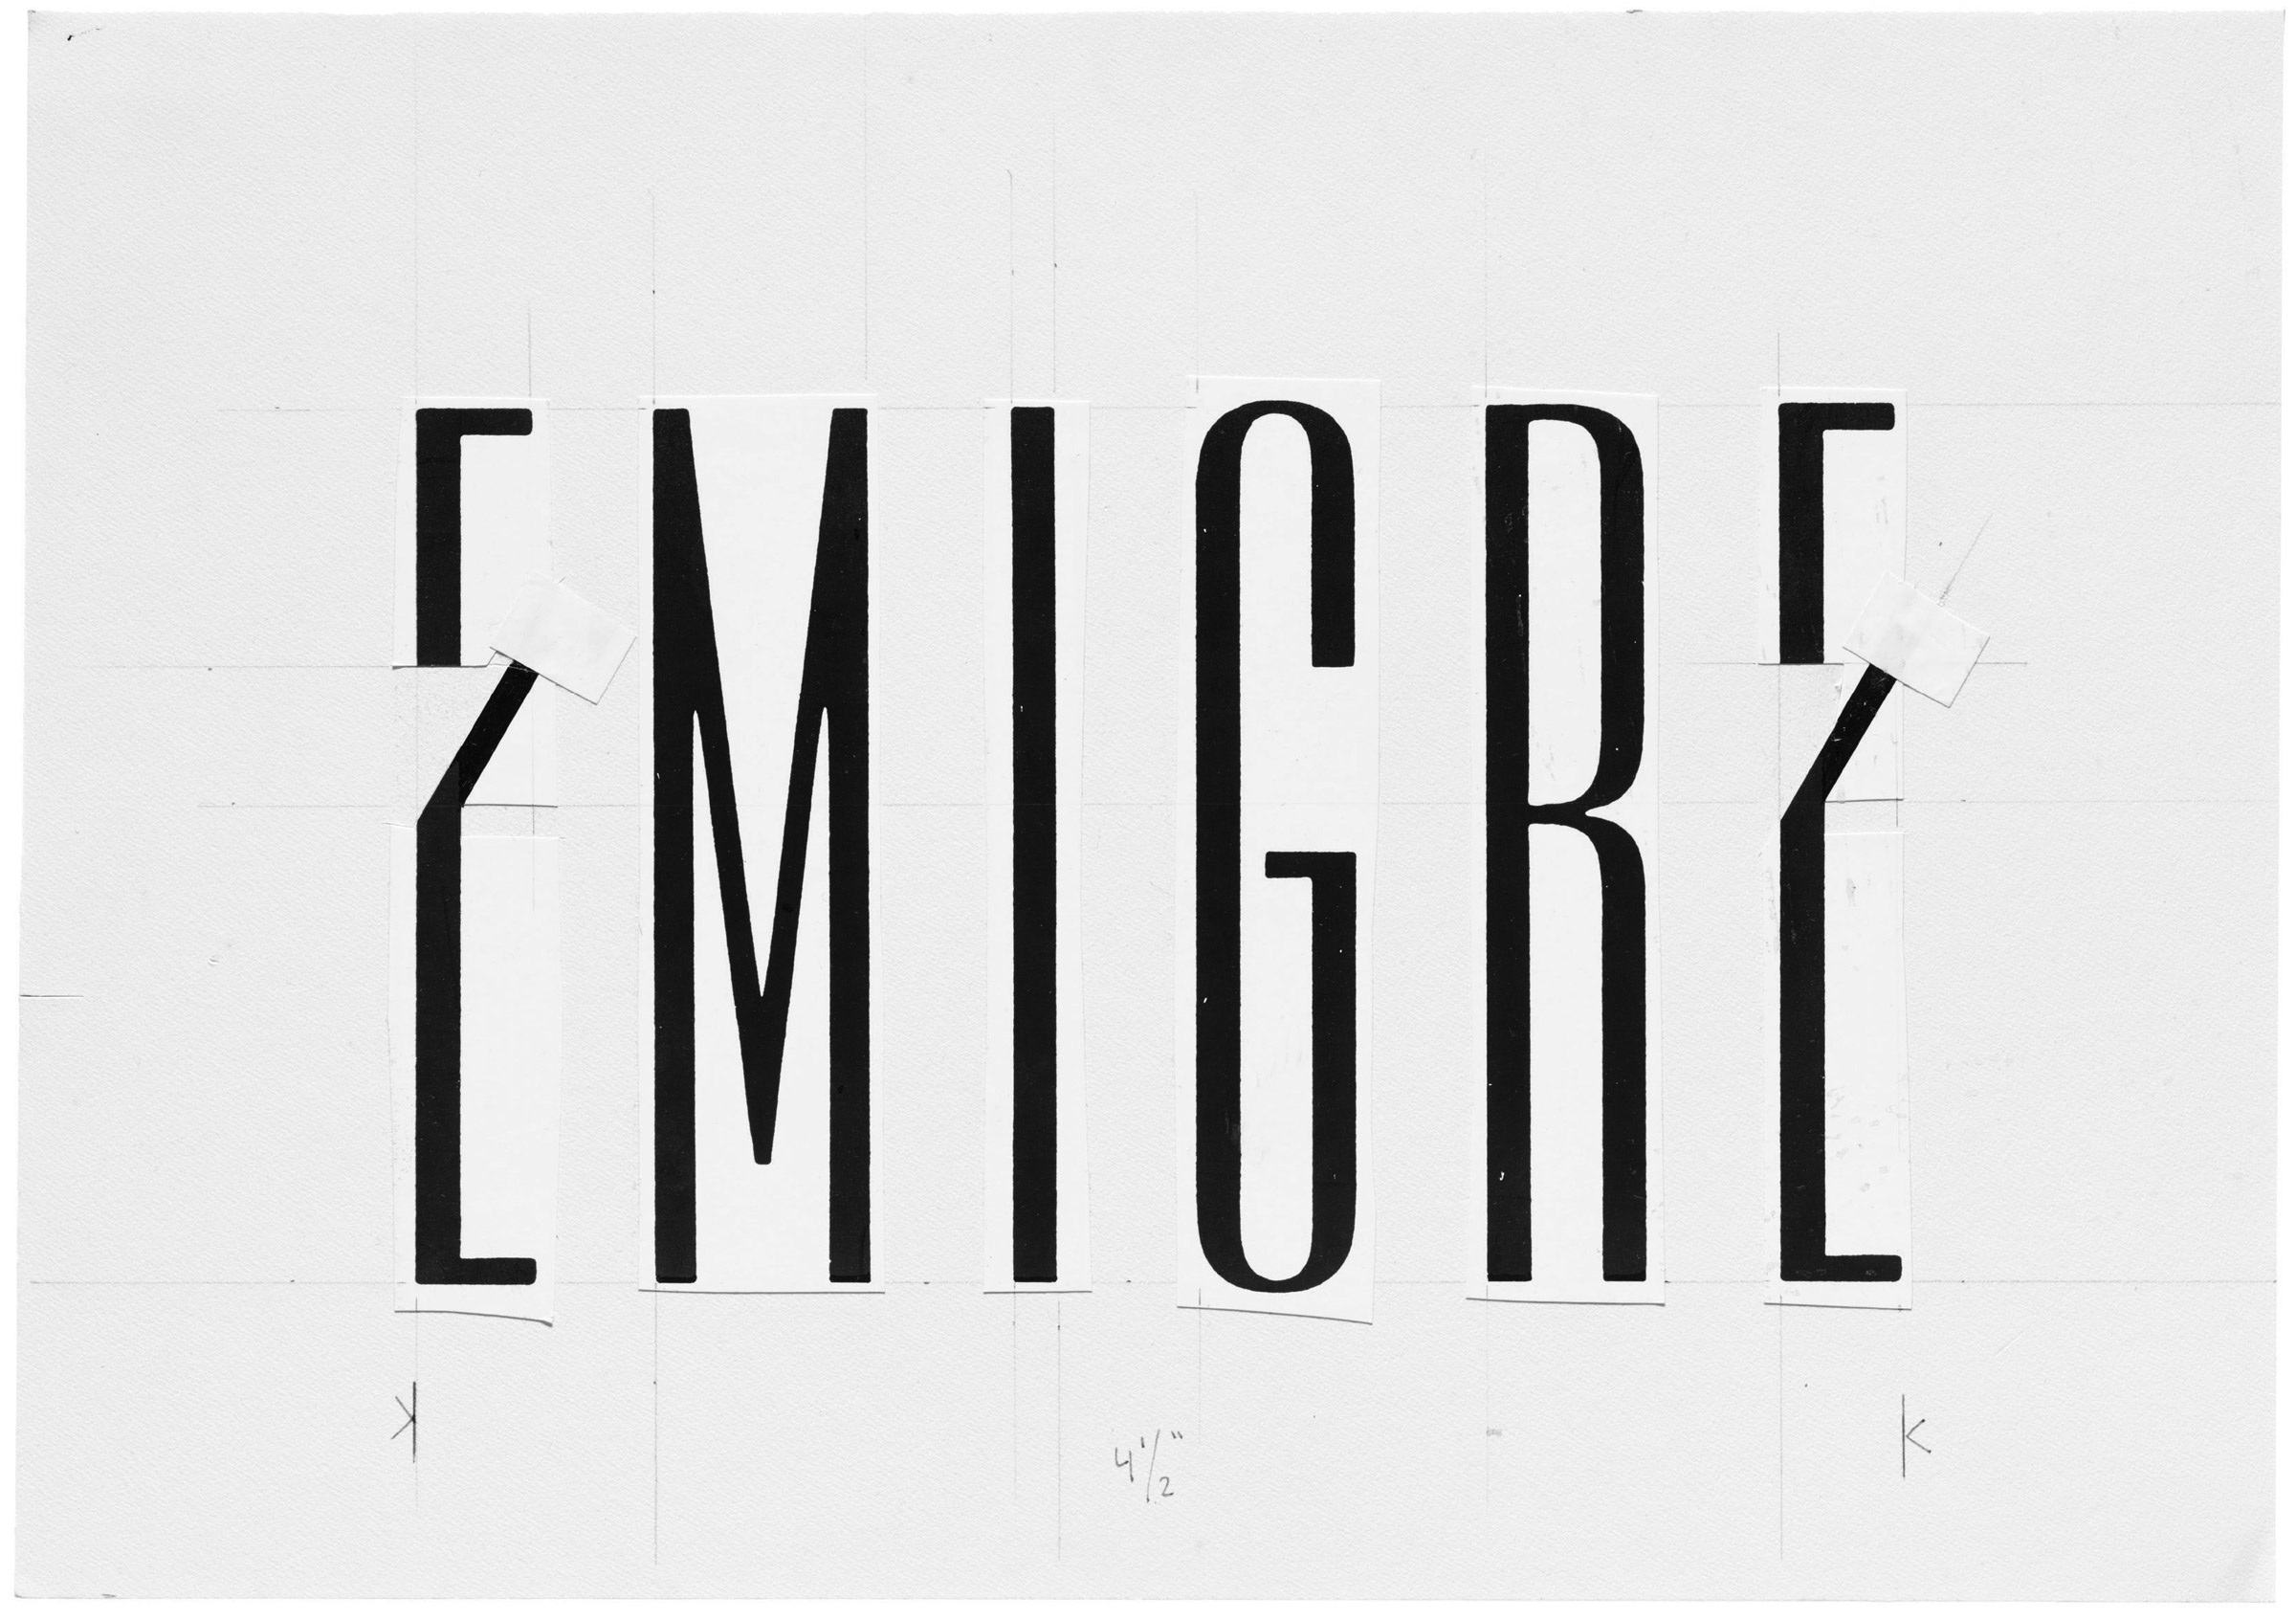 Emigre logo on paste-up board, 1983